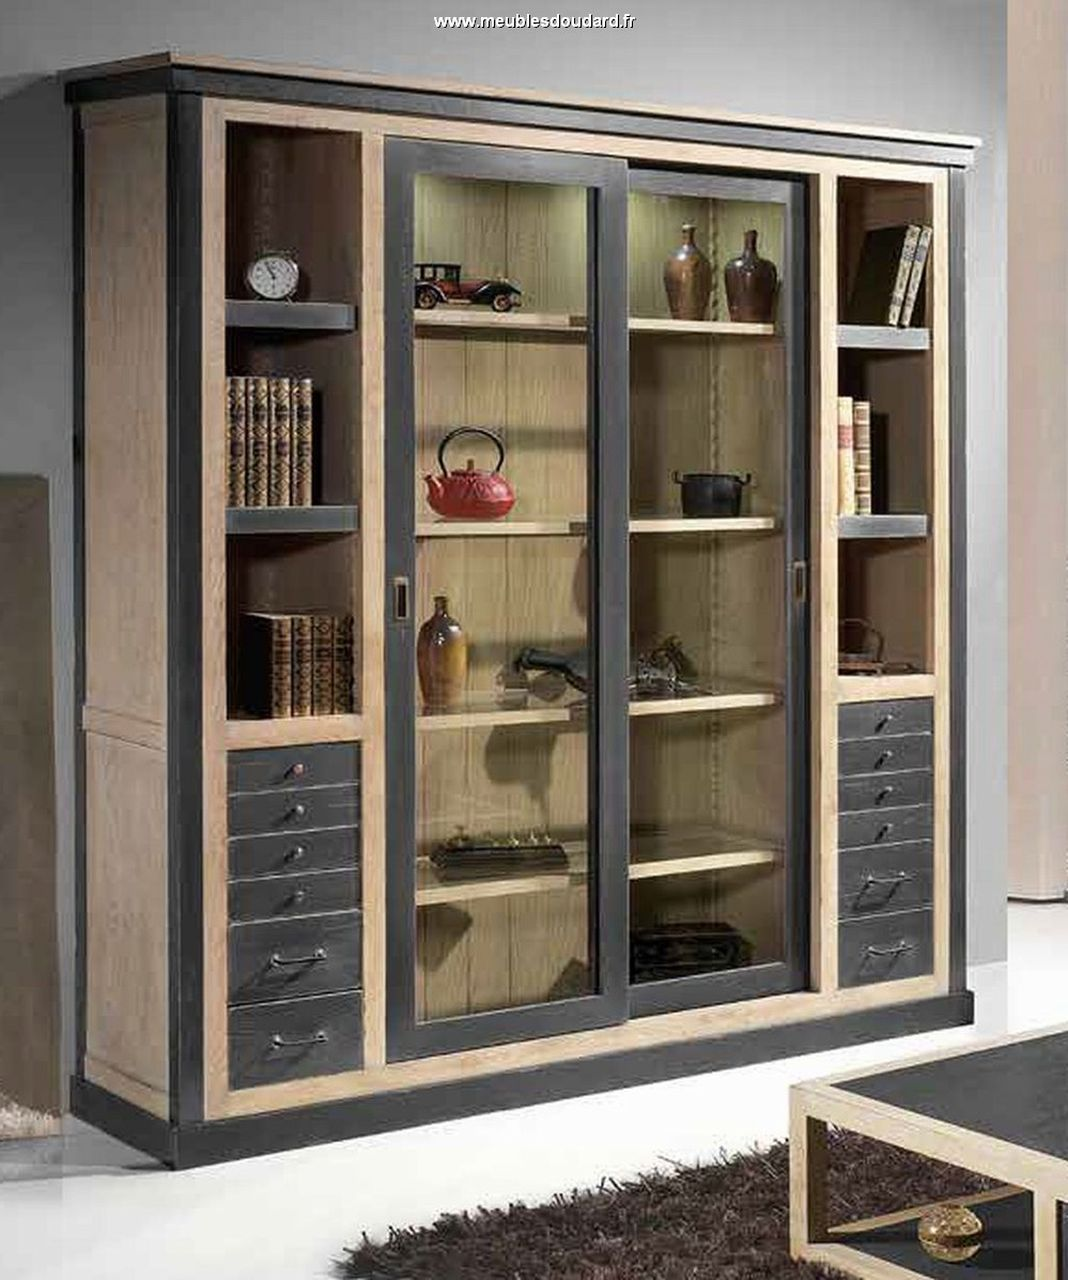 biblioth que moderne en bois massif portes coulissantes. Black Bedroom Furniture Sets. Home Design Ideas